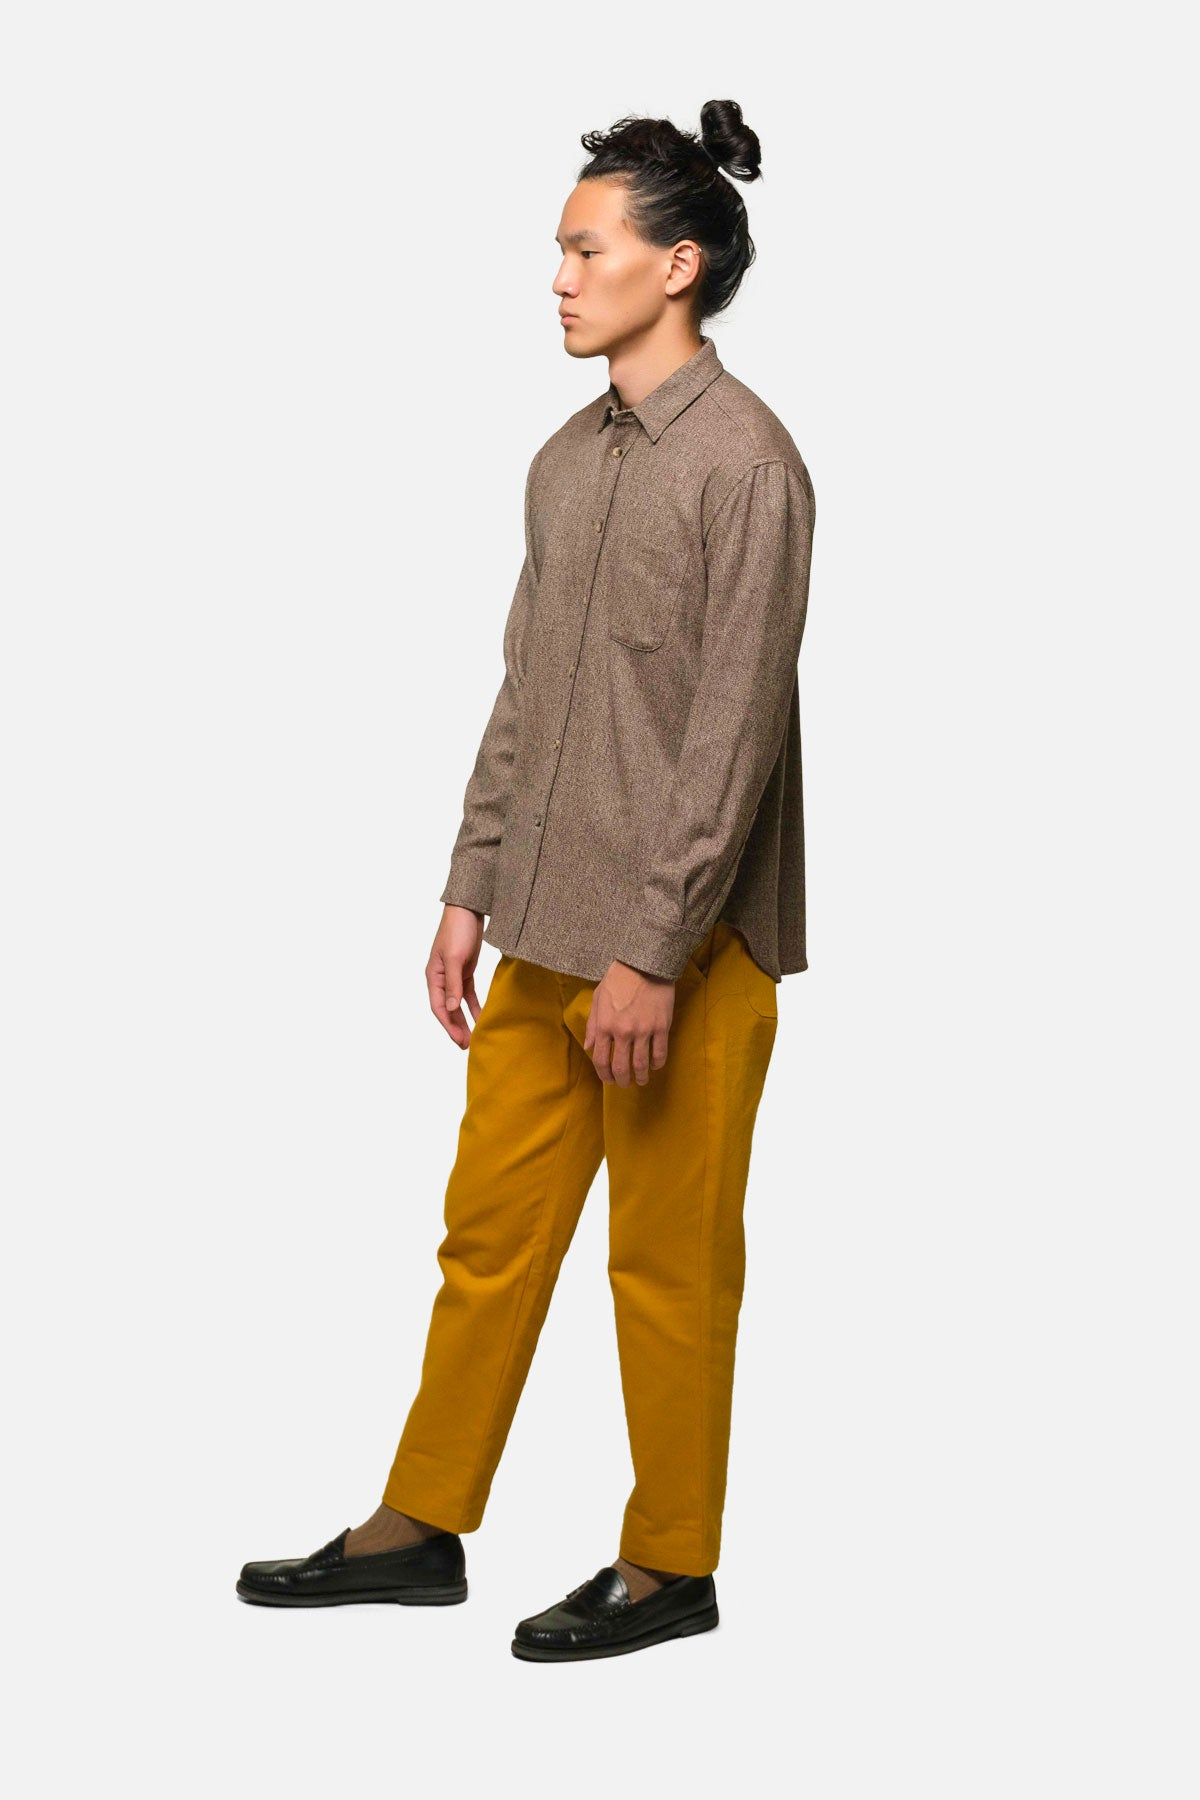 ATLAS TROUSER IN GOLD - Fortune Goods